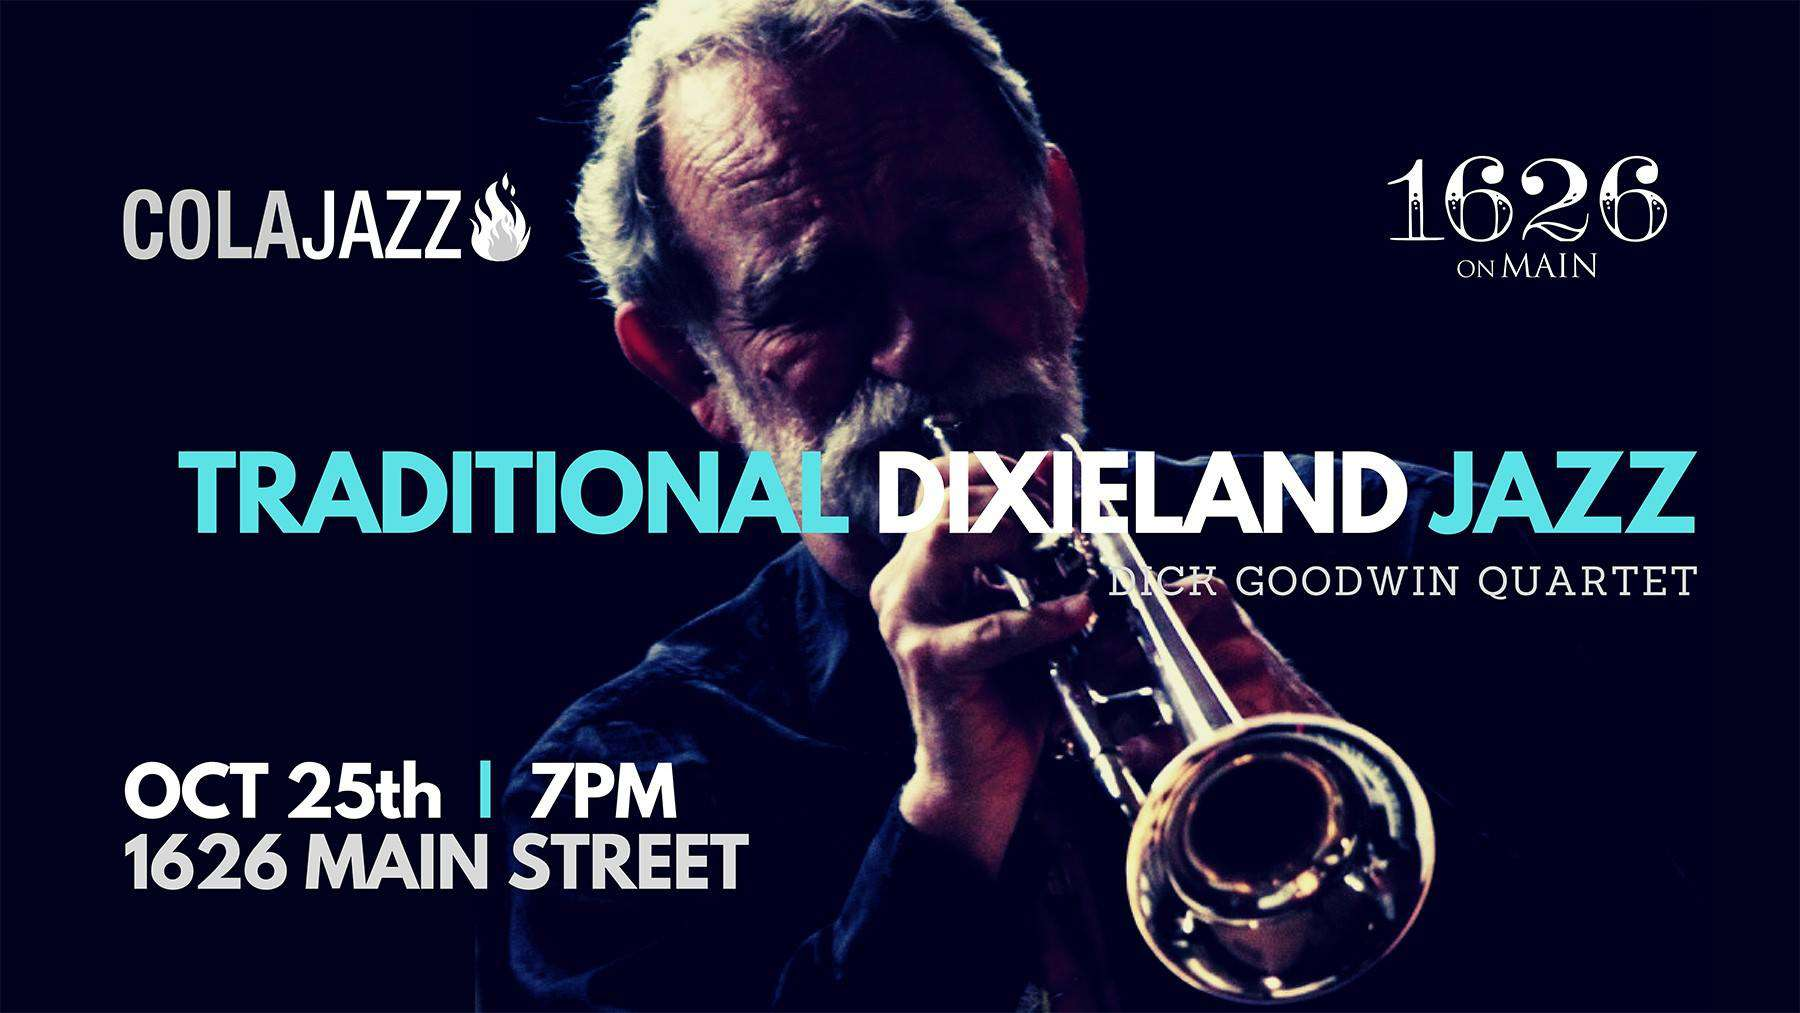 Trad jazz with Dick goodwin